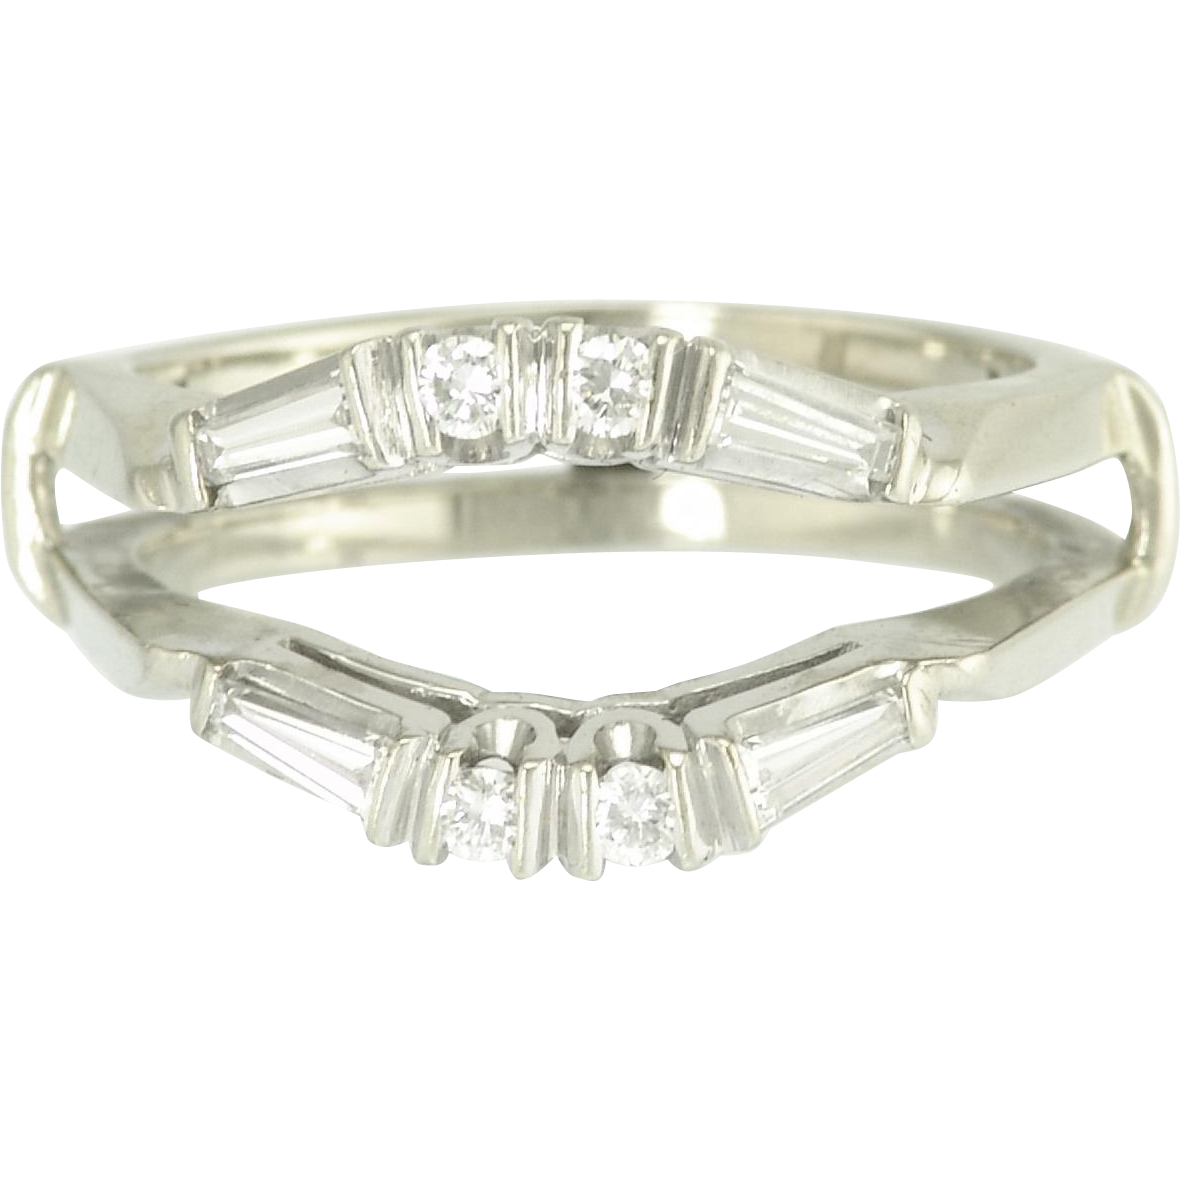 estate 14k white gold ring guard from adorn on